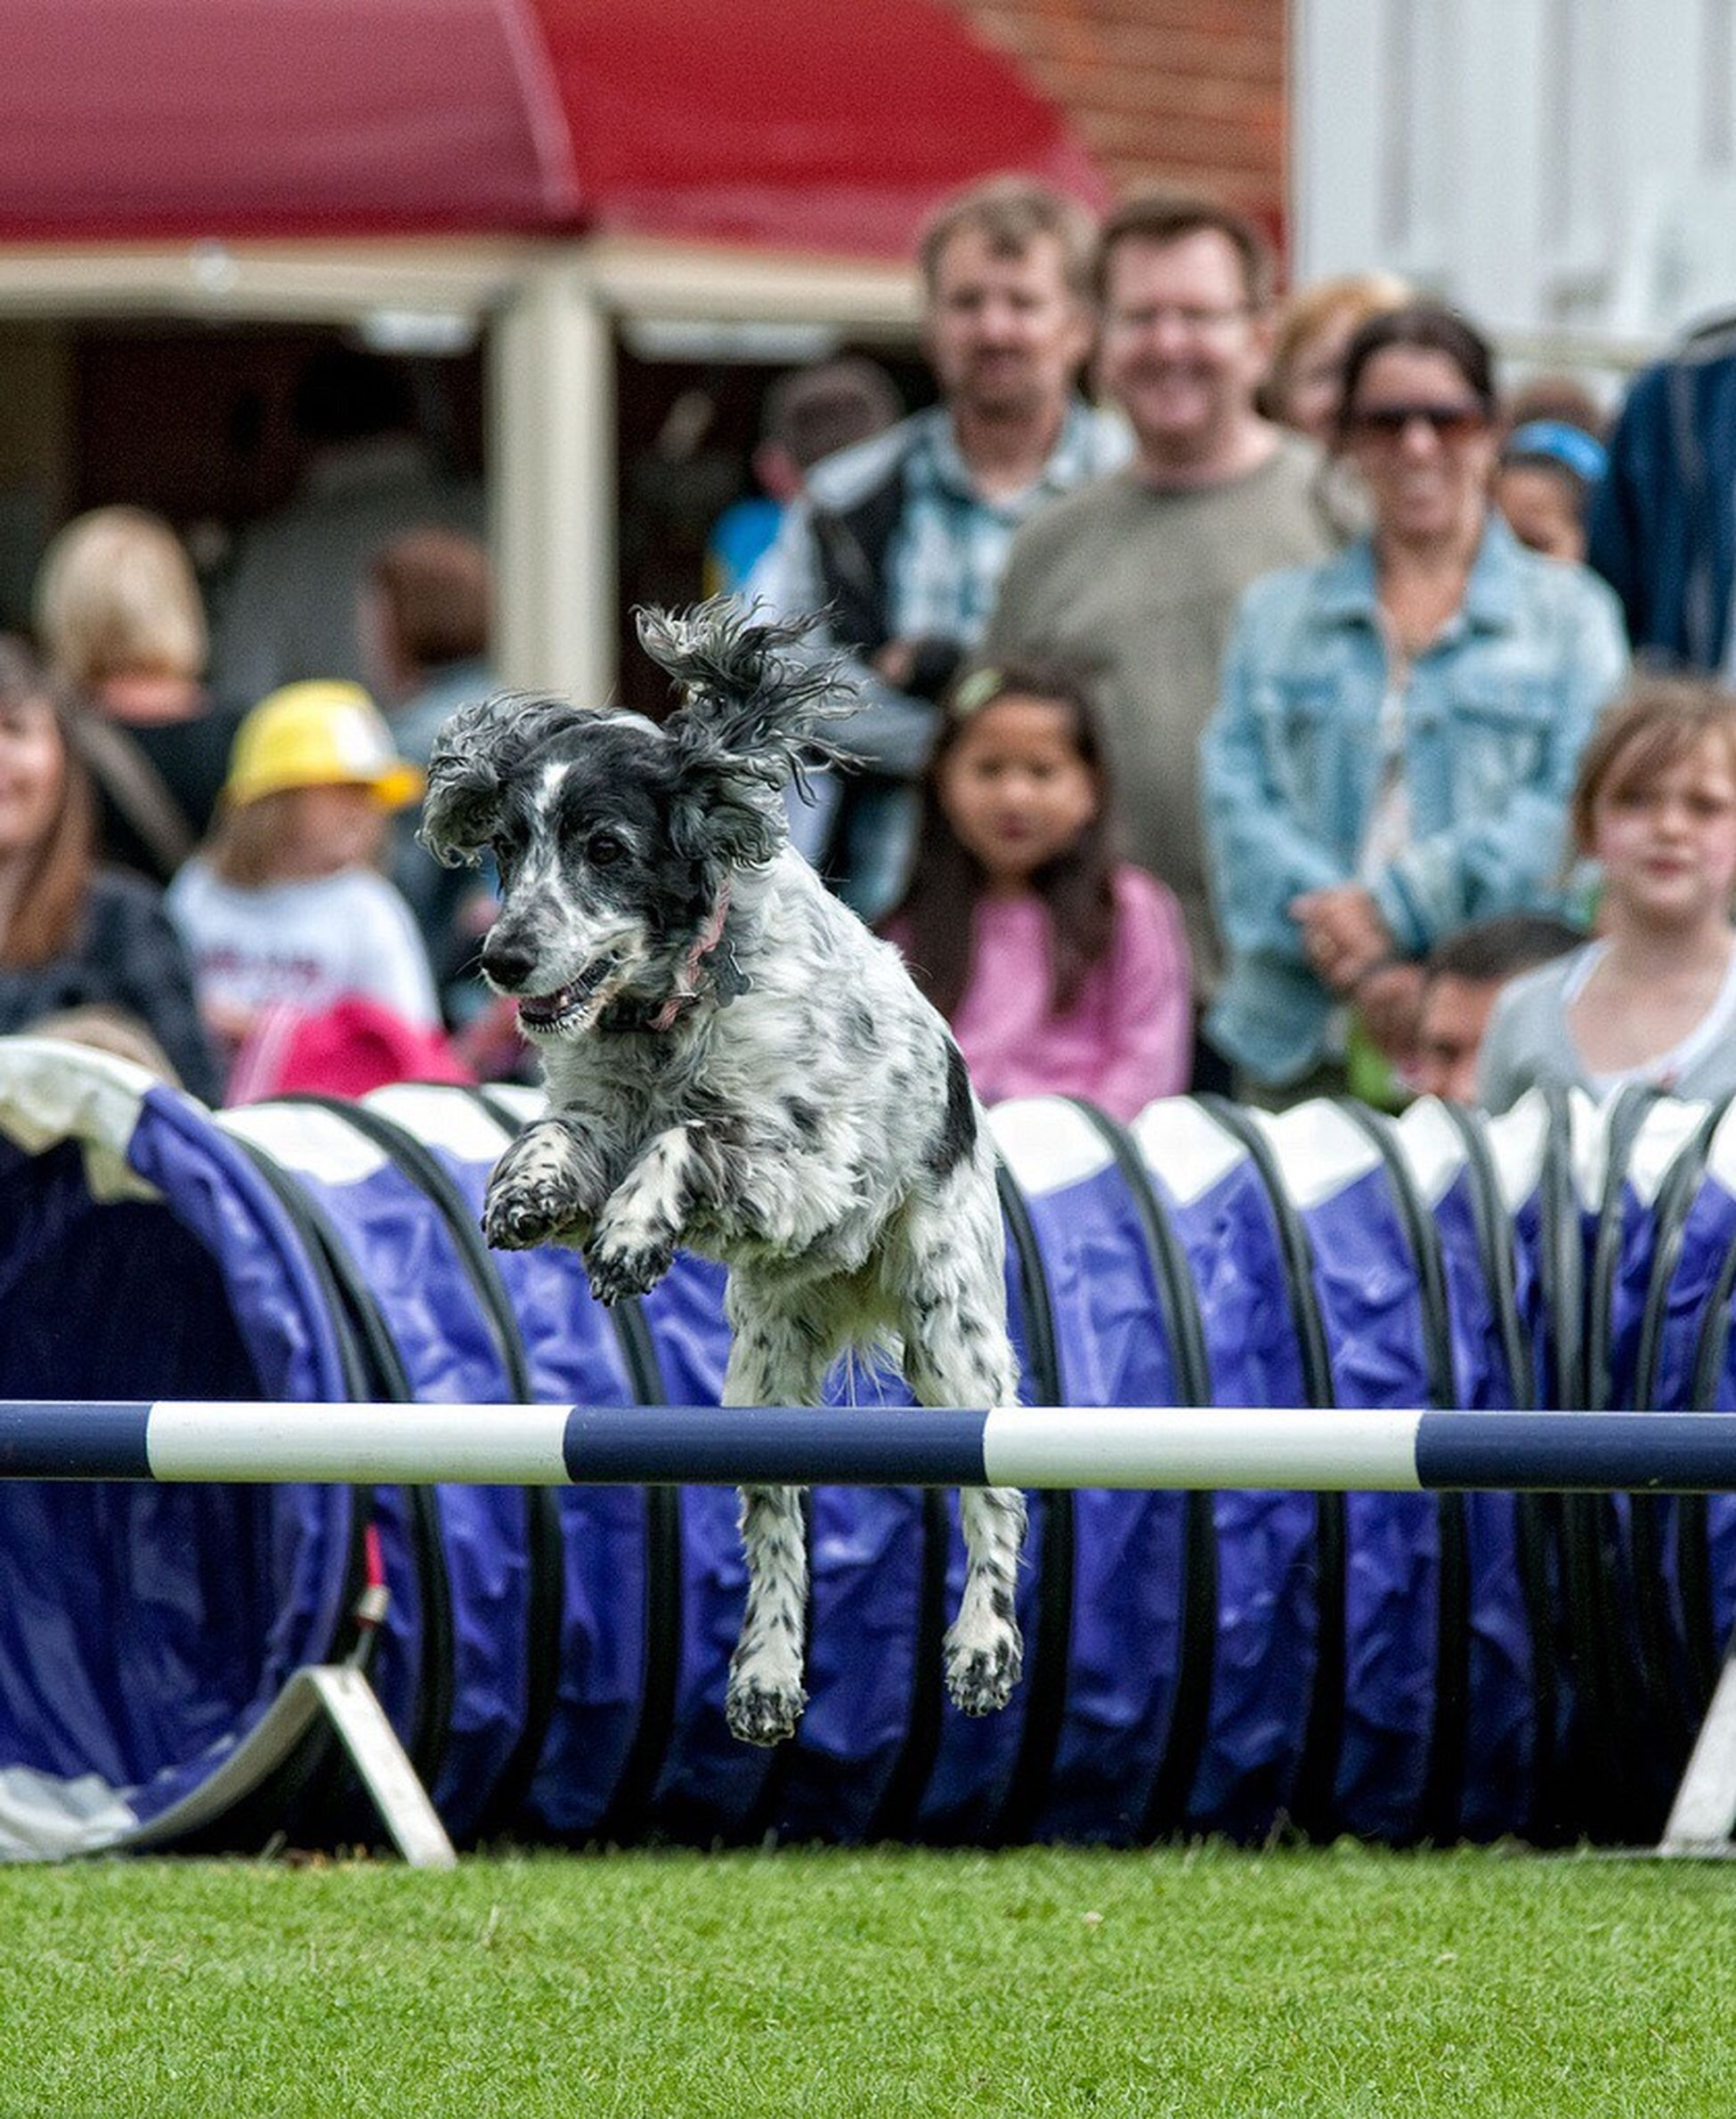 The flying spaniel Taking Photos Dogs In Action Dog Portrait Working Dogs Cockerspaniel Pet Photography  Dog Photography Relaxation Dog Countyside Country Fair Dog Agility